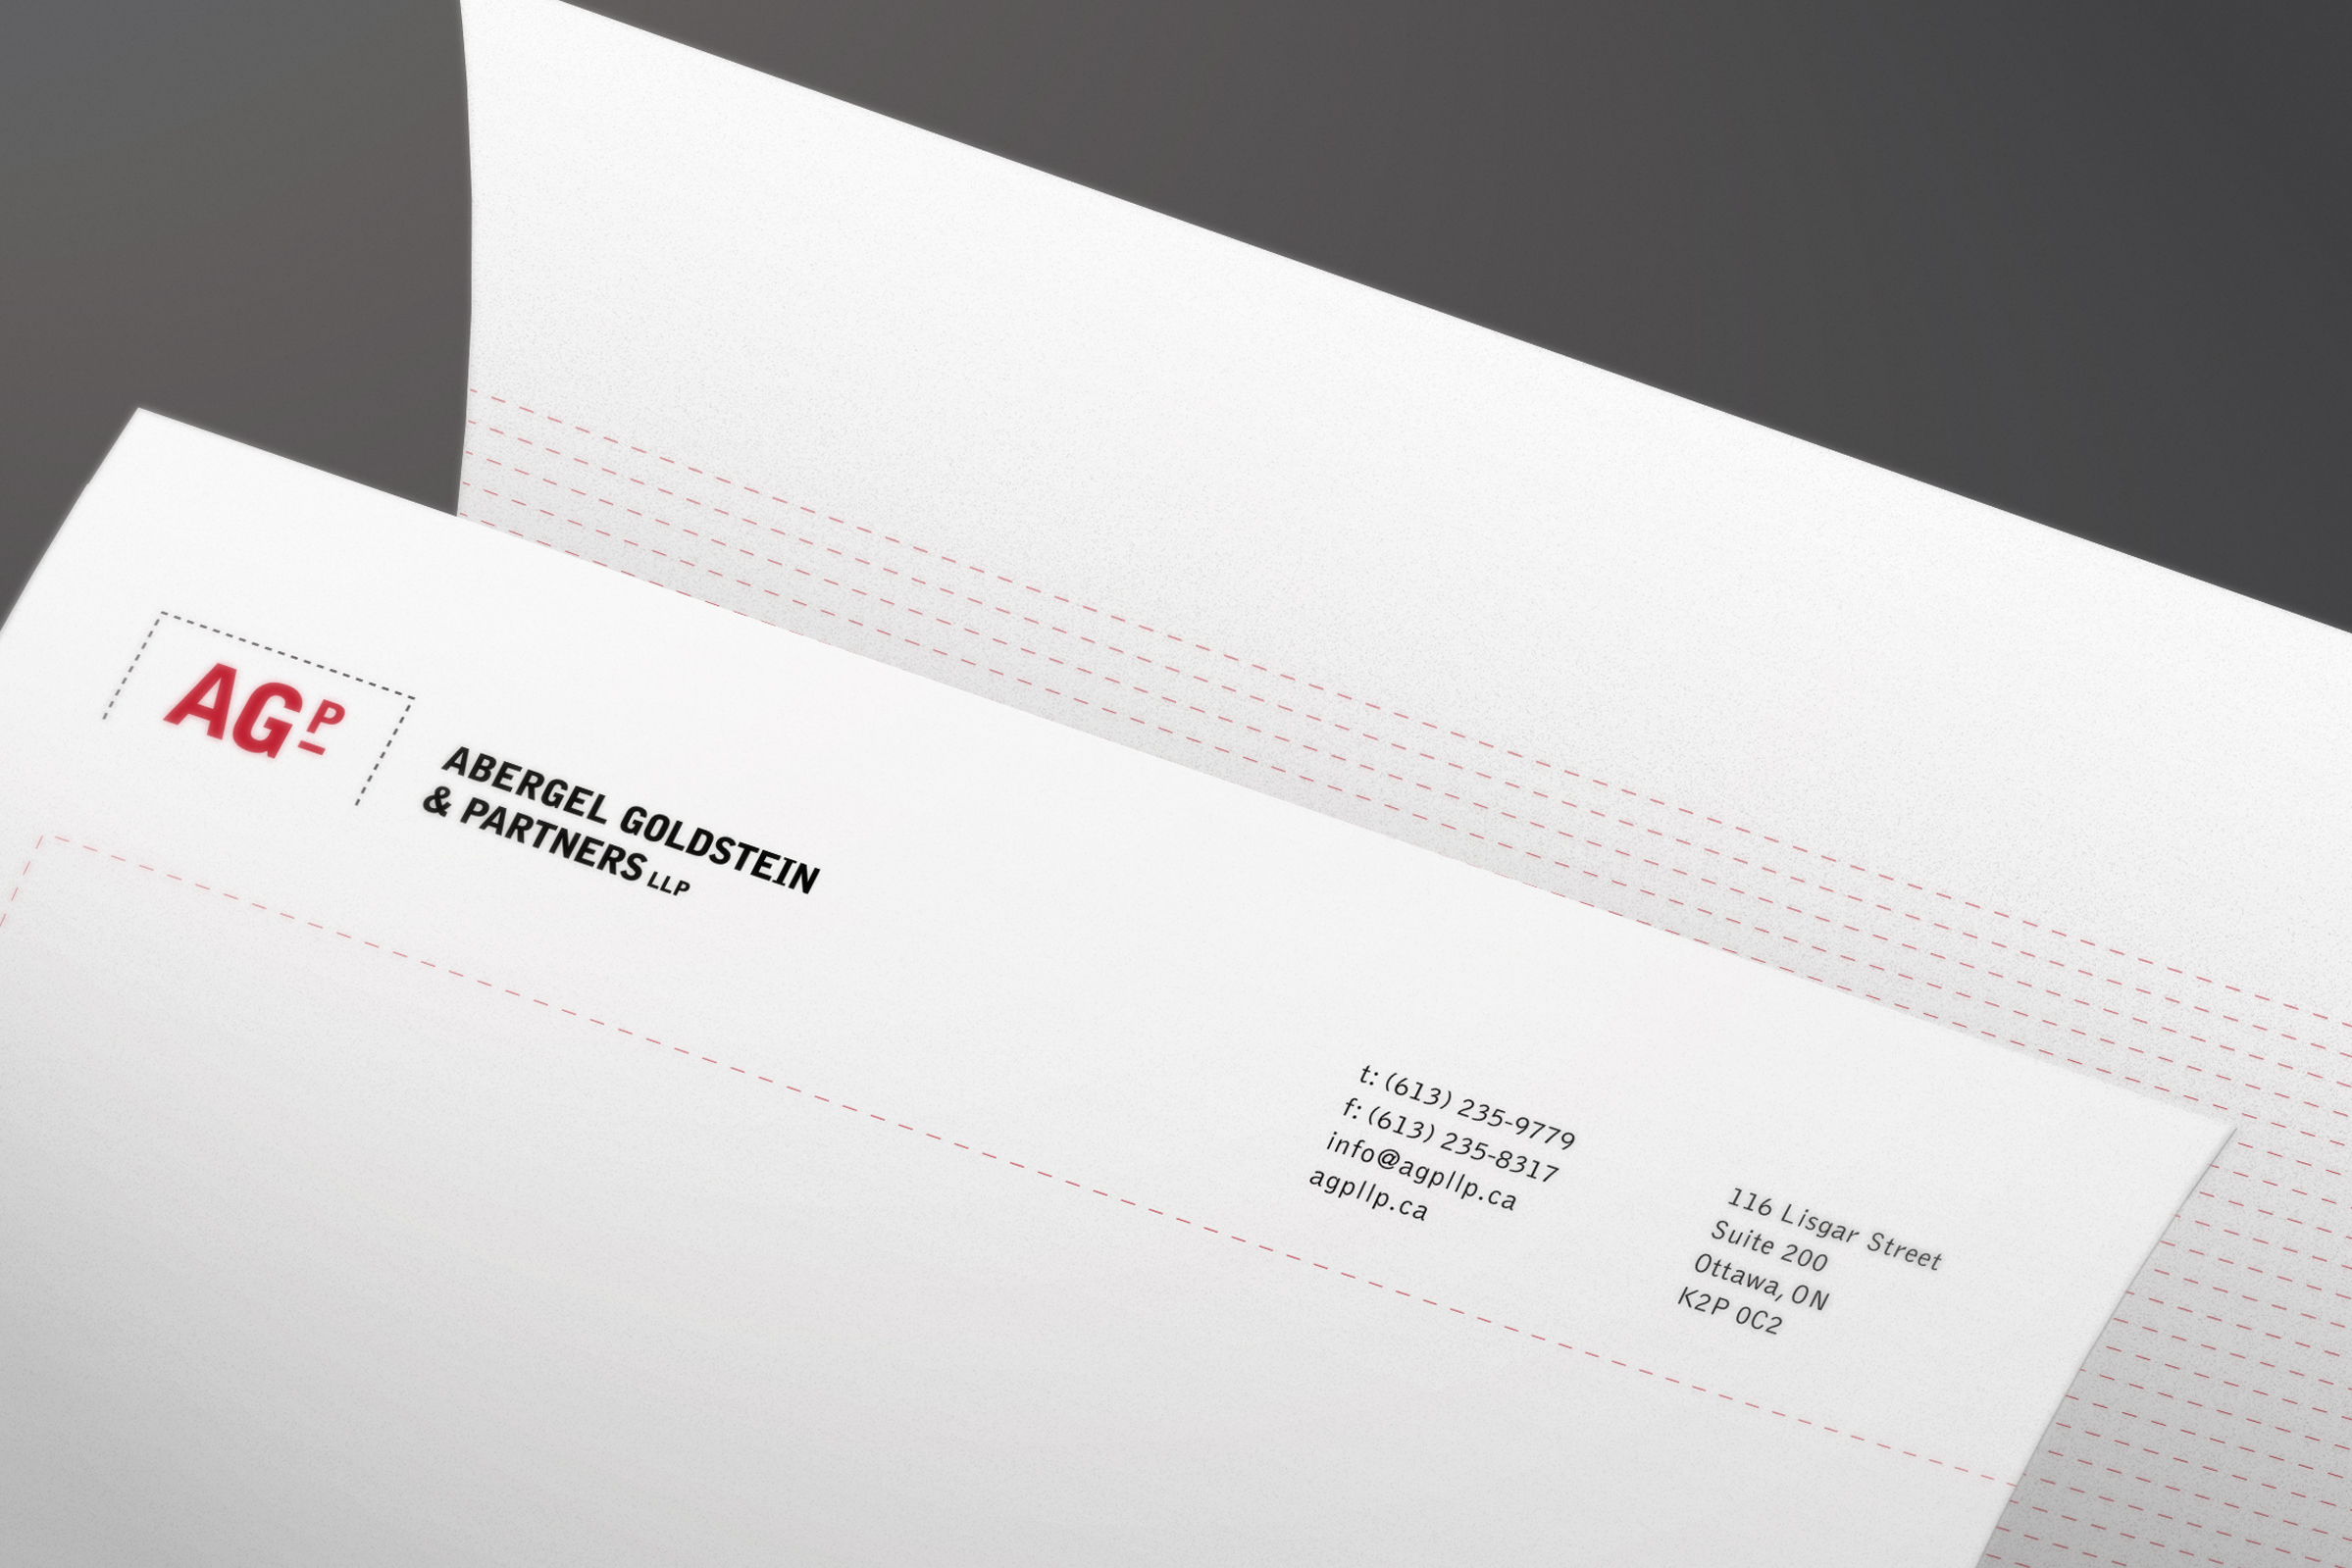 Letterhead for Abergel Goldstein & Partners, an Ottawa law firm, by Graphic Designer idApostle